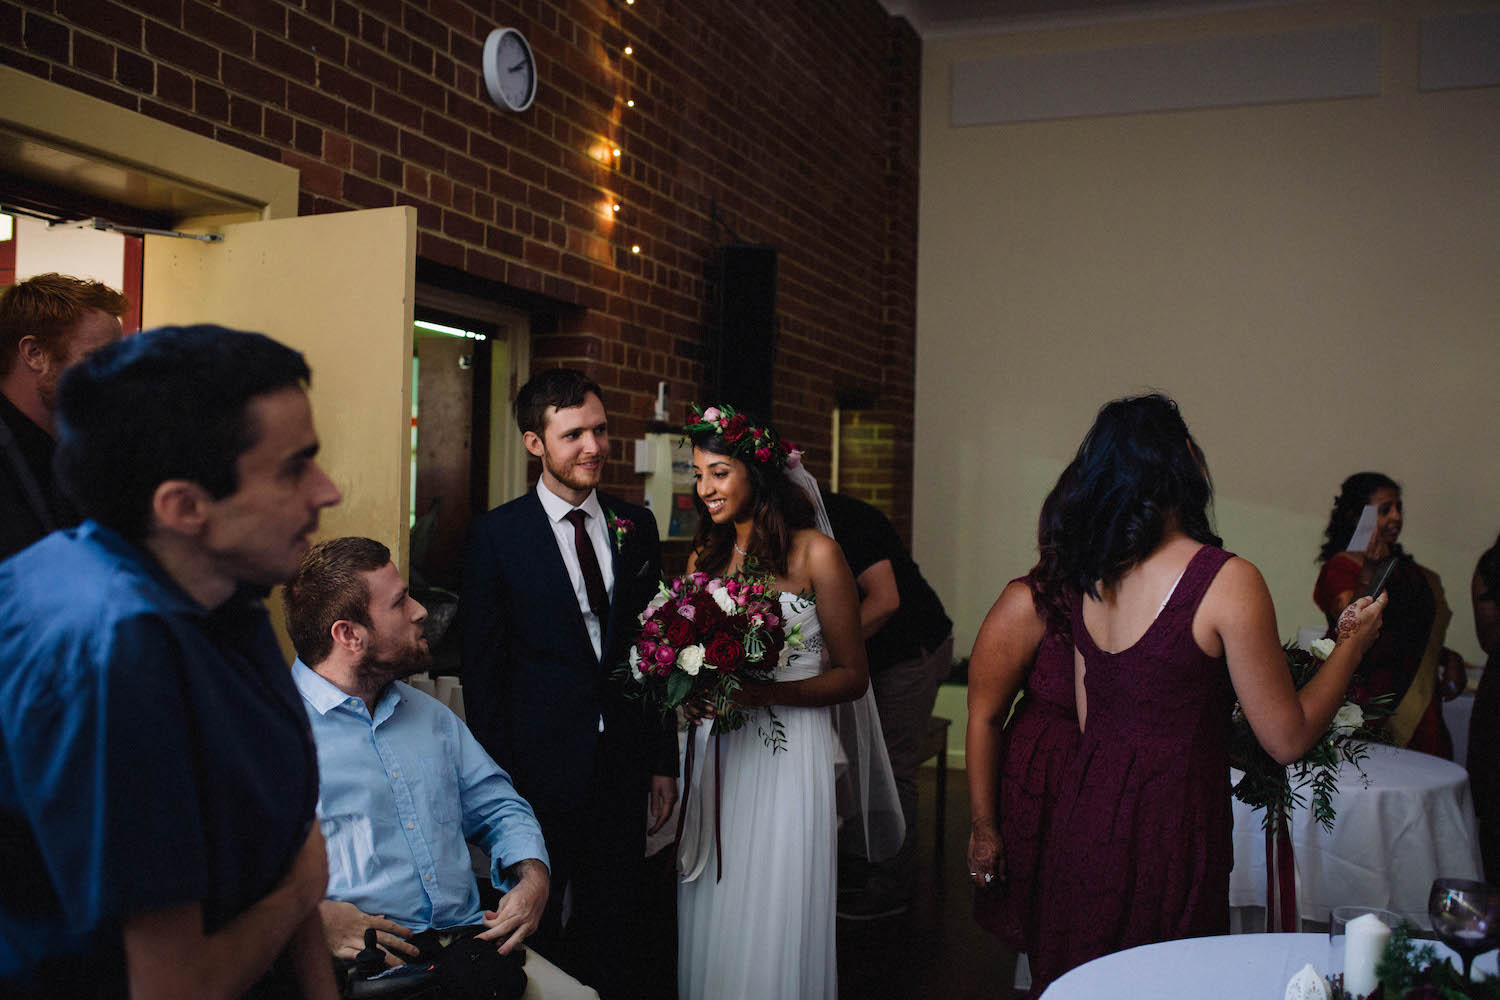 The bride & groom celebrate after their Subiaco wedding ceremony at St Matthew's Anglican church.